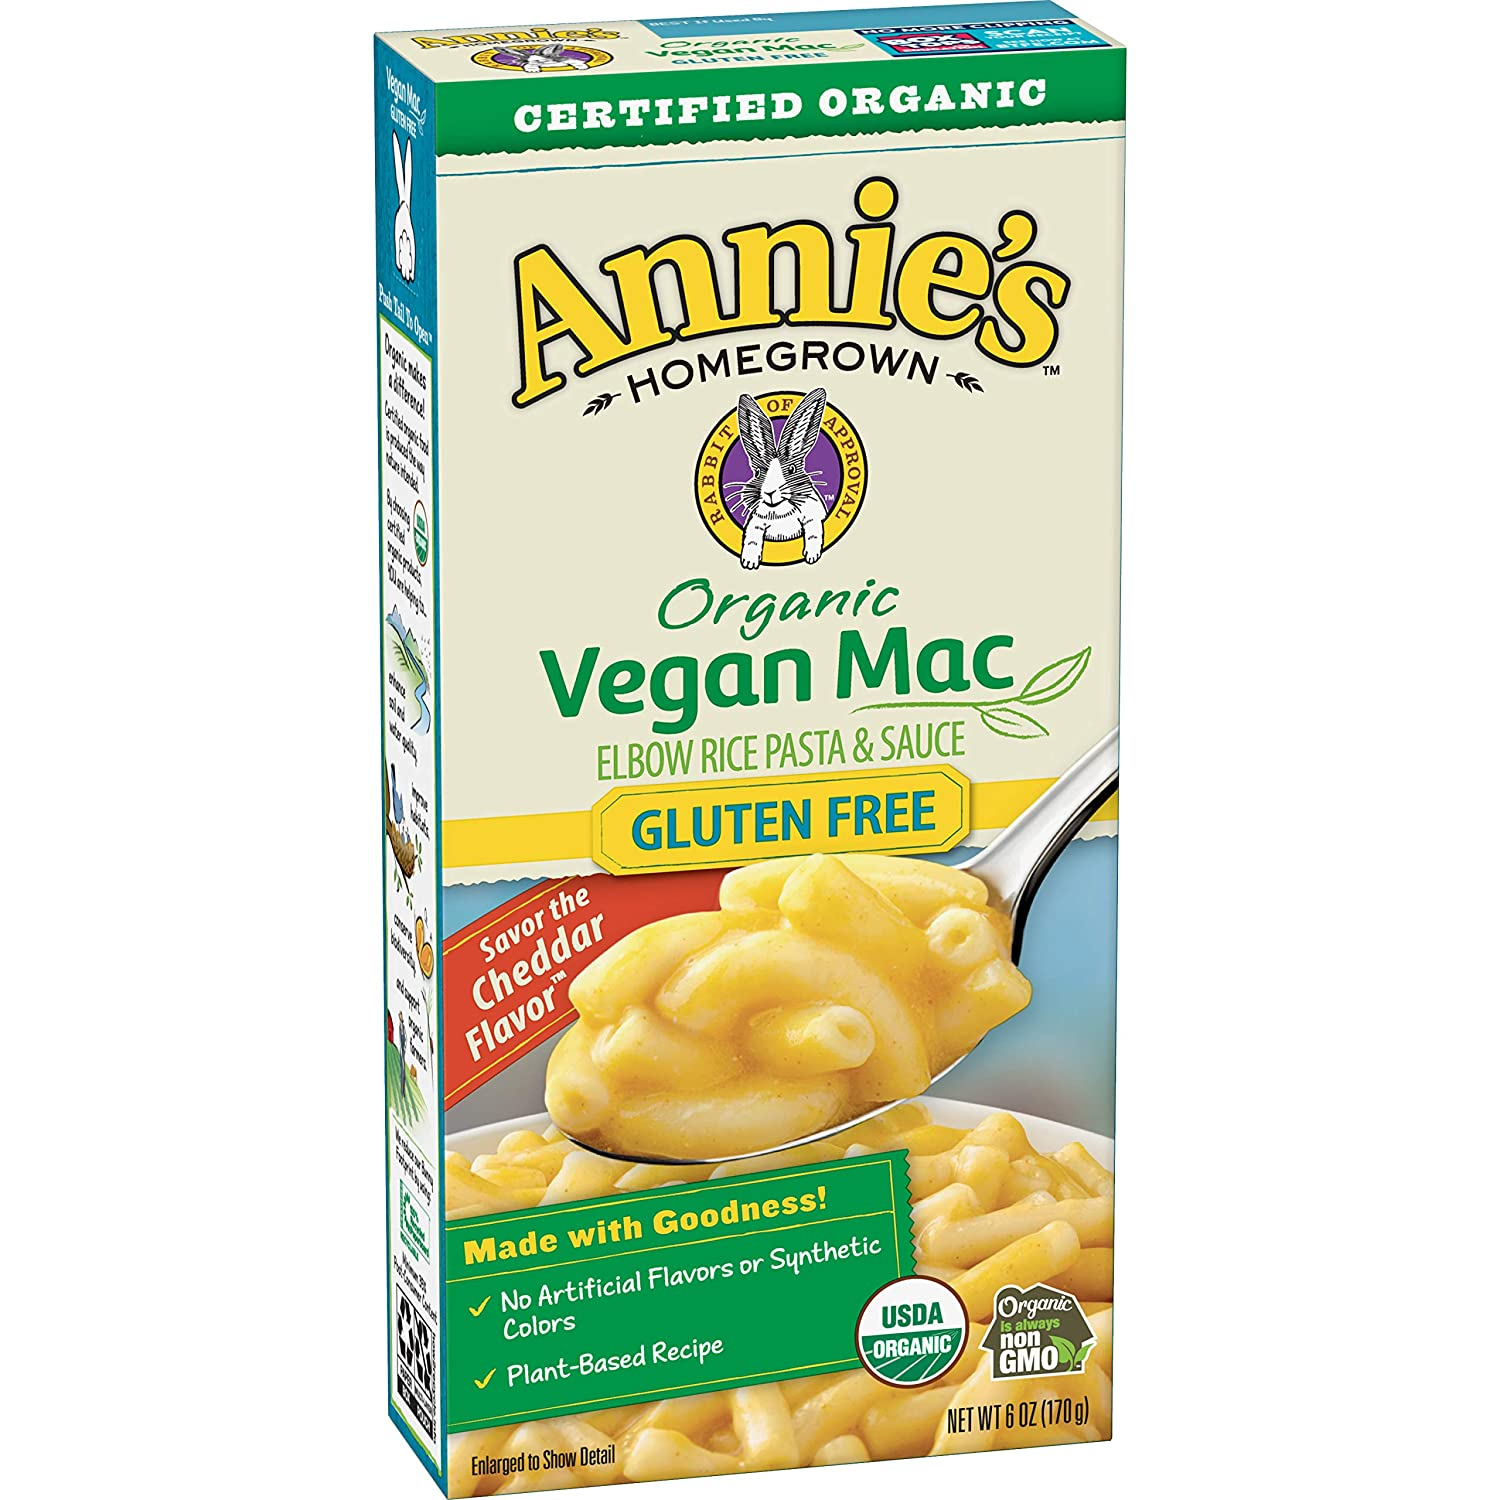 Annie's Organic Vegan Gluten-Free Elbows & Creamy Sauce Macaroni & Cheese, 12 Boxes, 6oz (Pack of 12) - Packaging May Vary